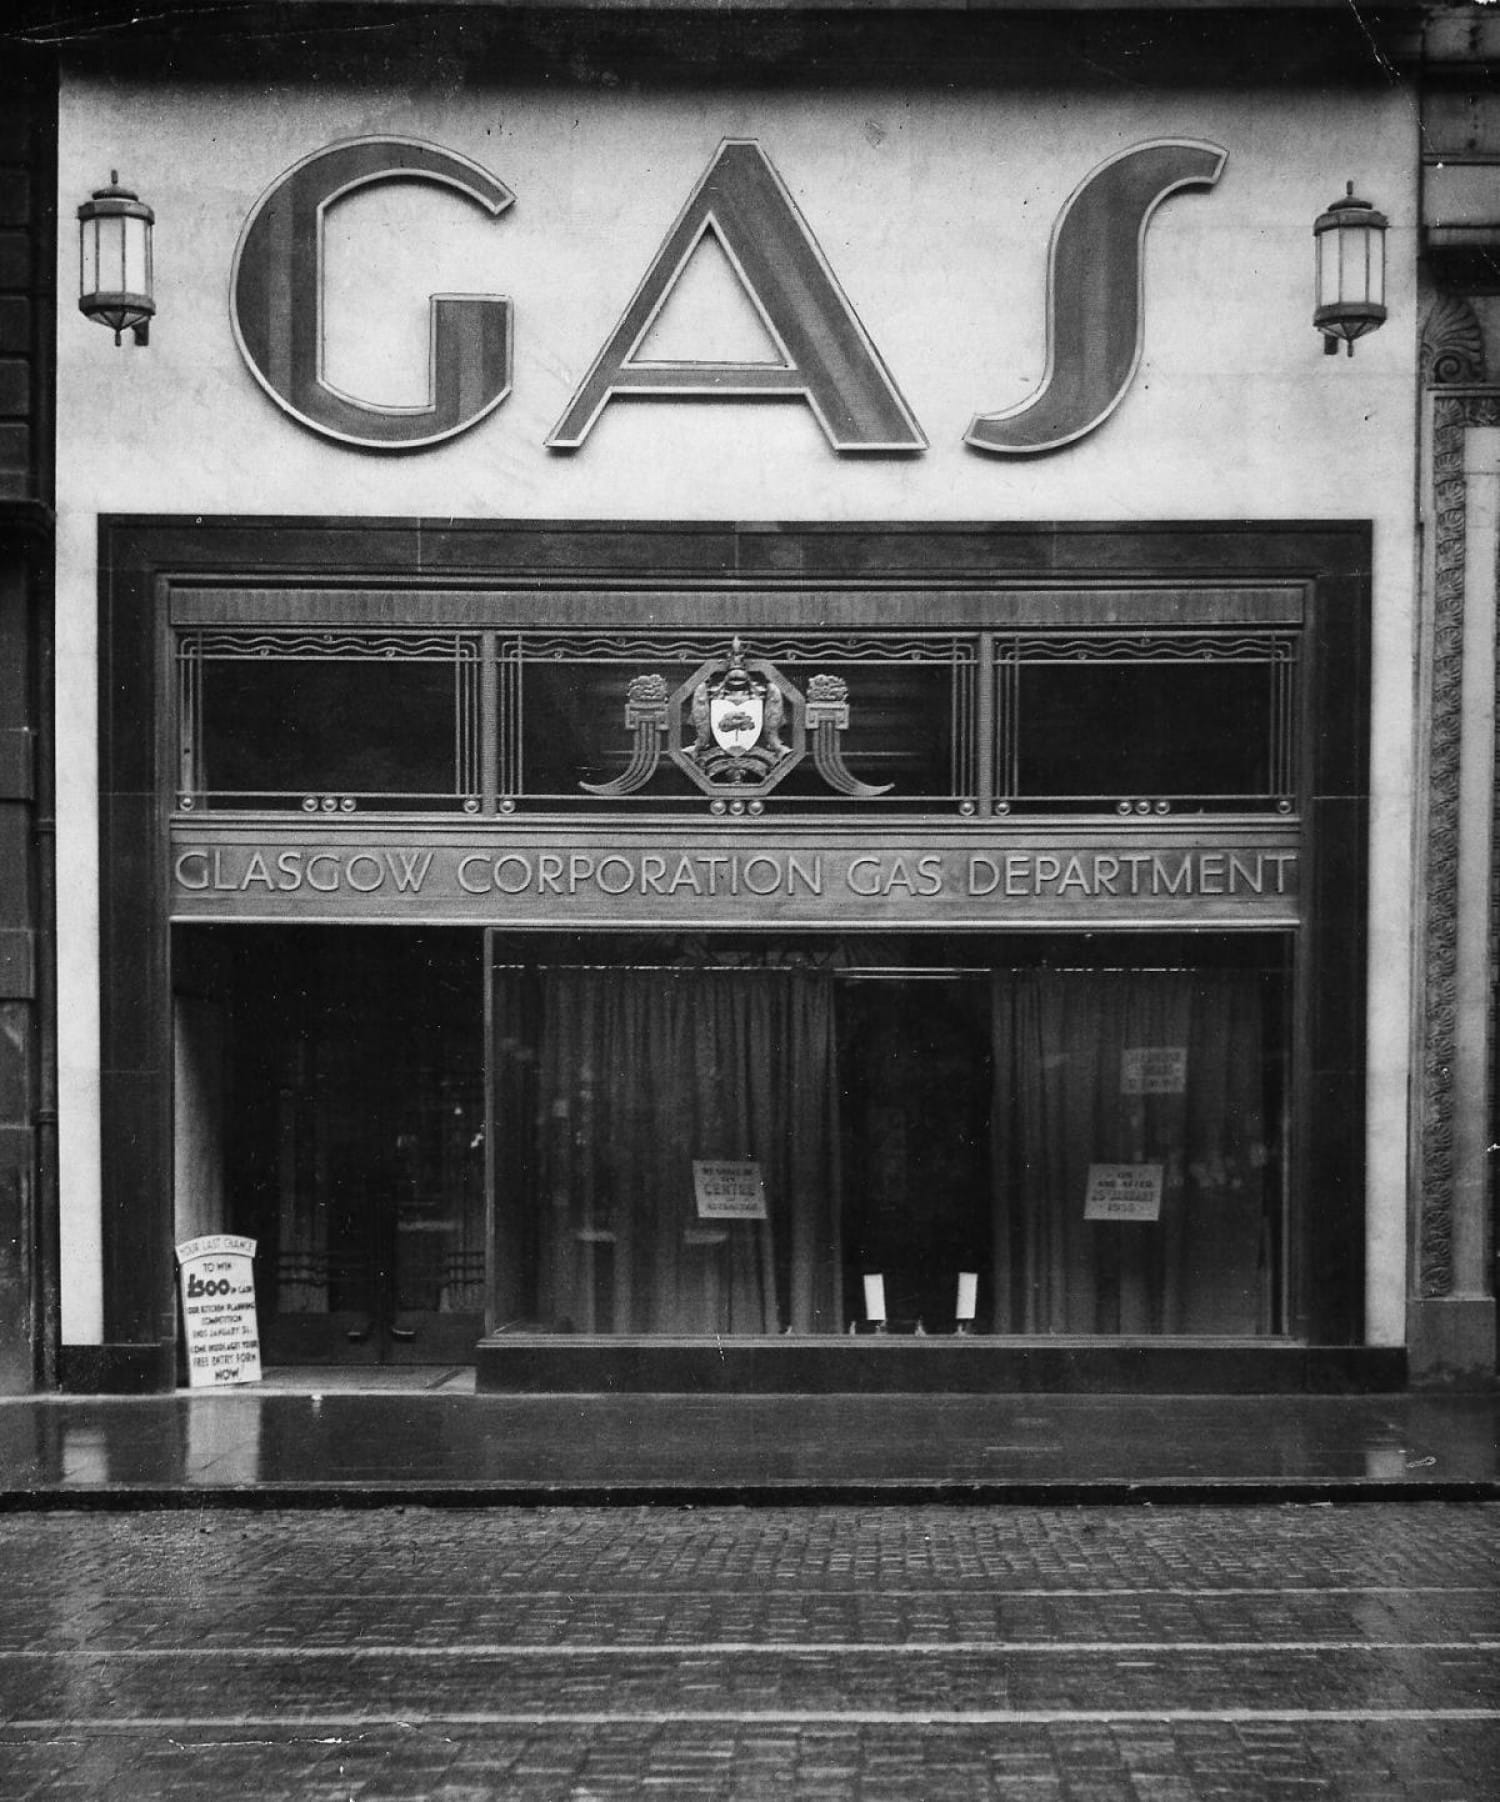 The Glasgow Corporation Gas Department shop in Sauchiehall Street, 1930s (Glasgow City Archives)